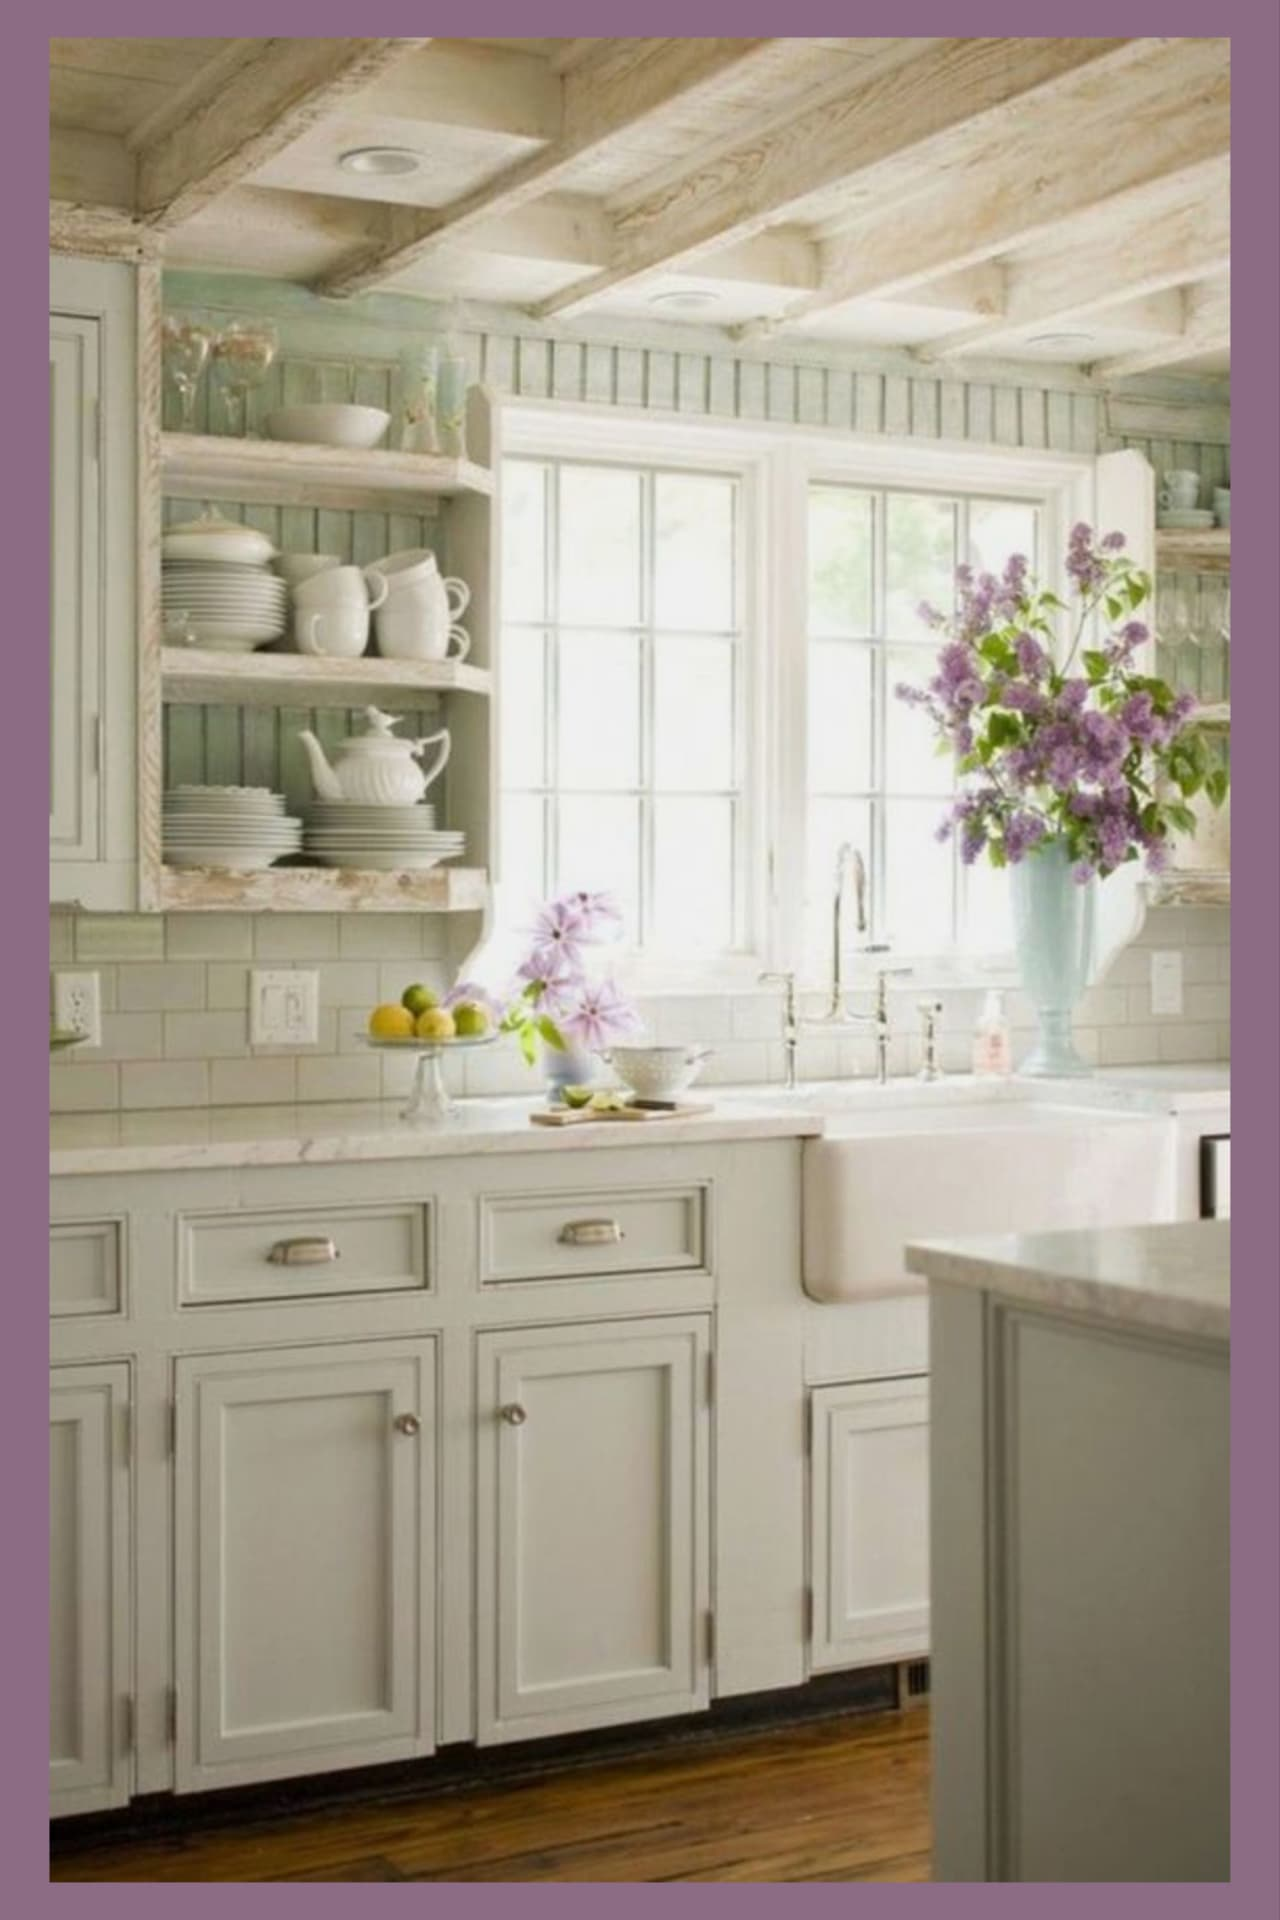 Country Cottage Kitchens - Country cottage kitchen ideas on a budget including: beach cottage kitchen ideas, modern cottage kitchen ideas, white cottage kitchen ideas, lake house kitchen cabinets and decor ideas, cabin kitchen decor ideas, country kitchen ideas for small kitchens and more kitchen decorating ideas on a budget